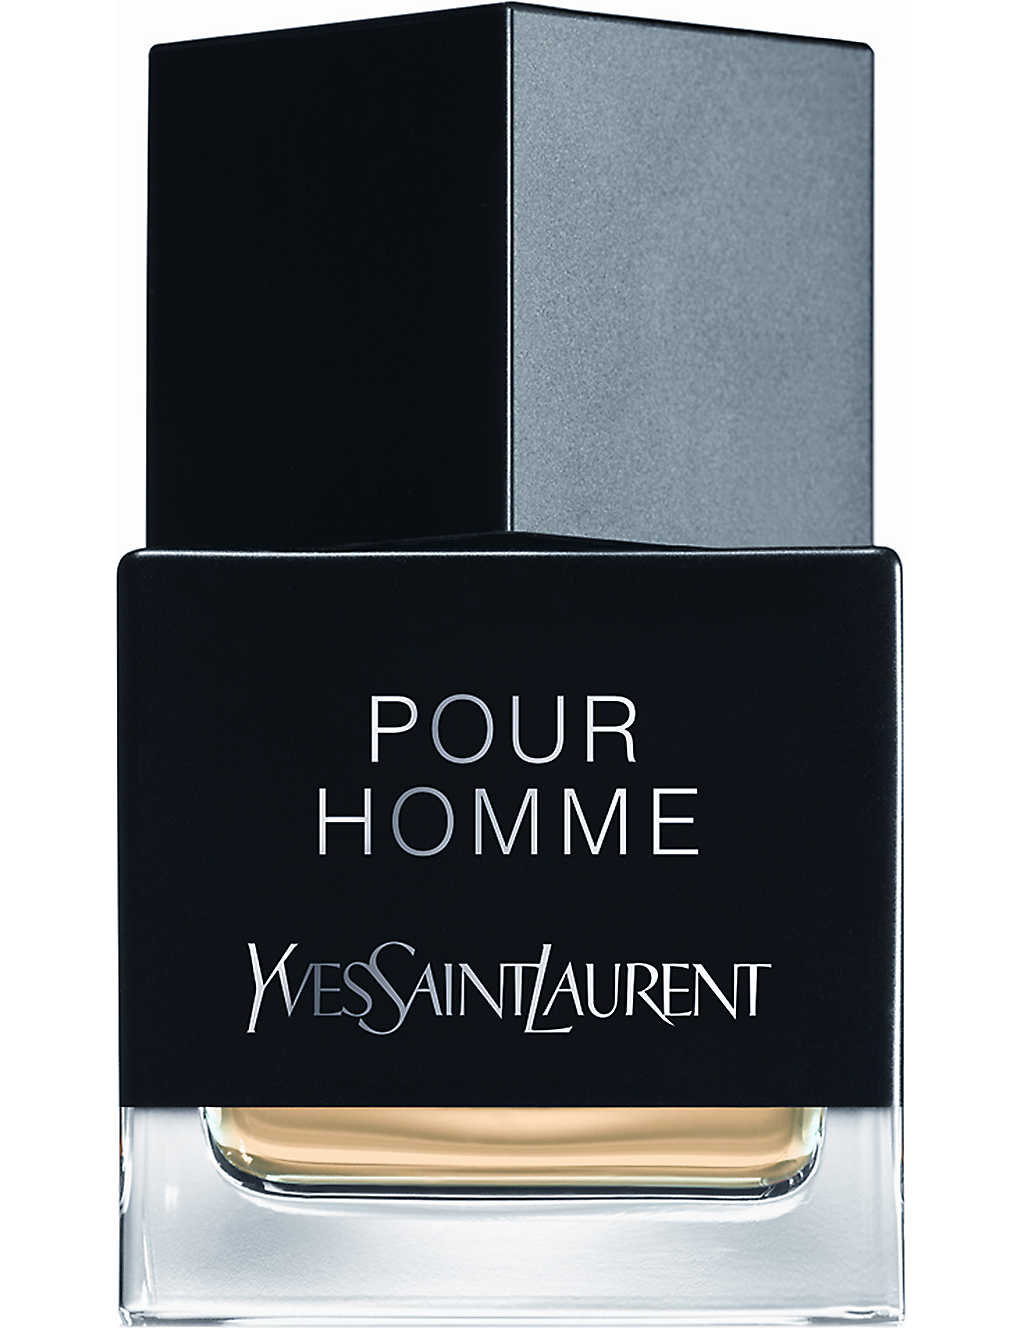 YVES SAINT LAURENT: Pour Homme eau de toilette spray 80ml